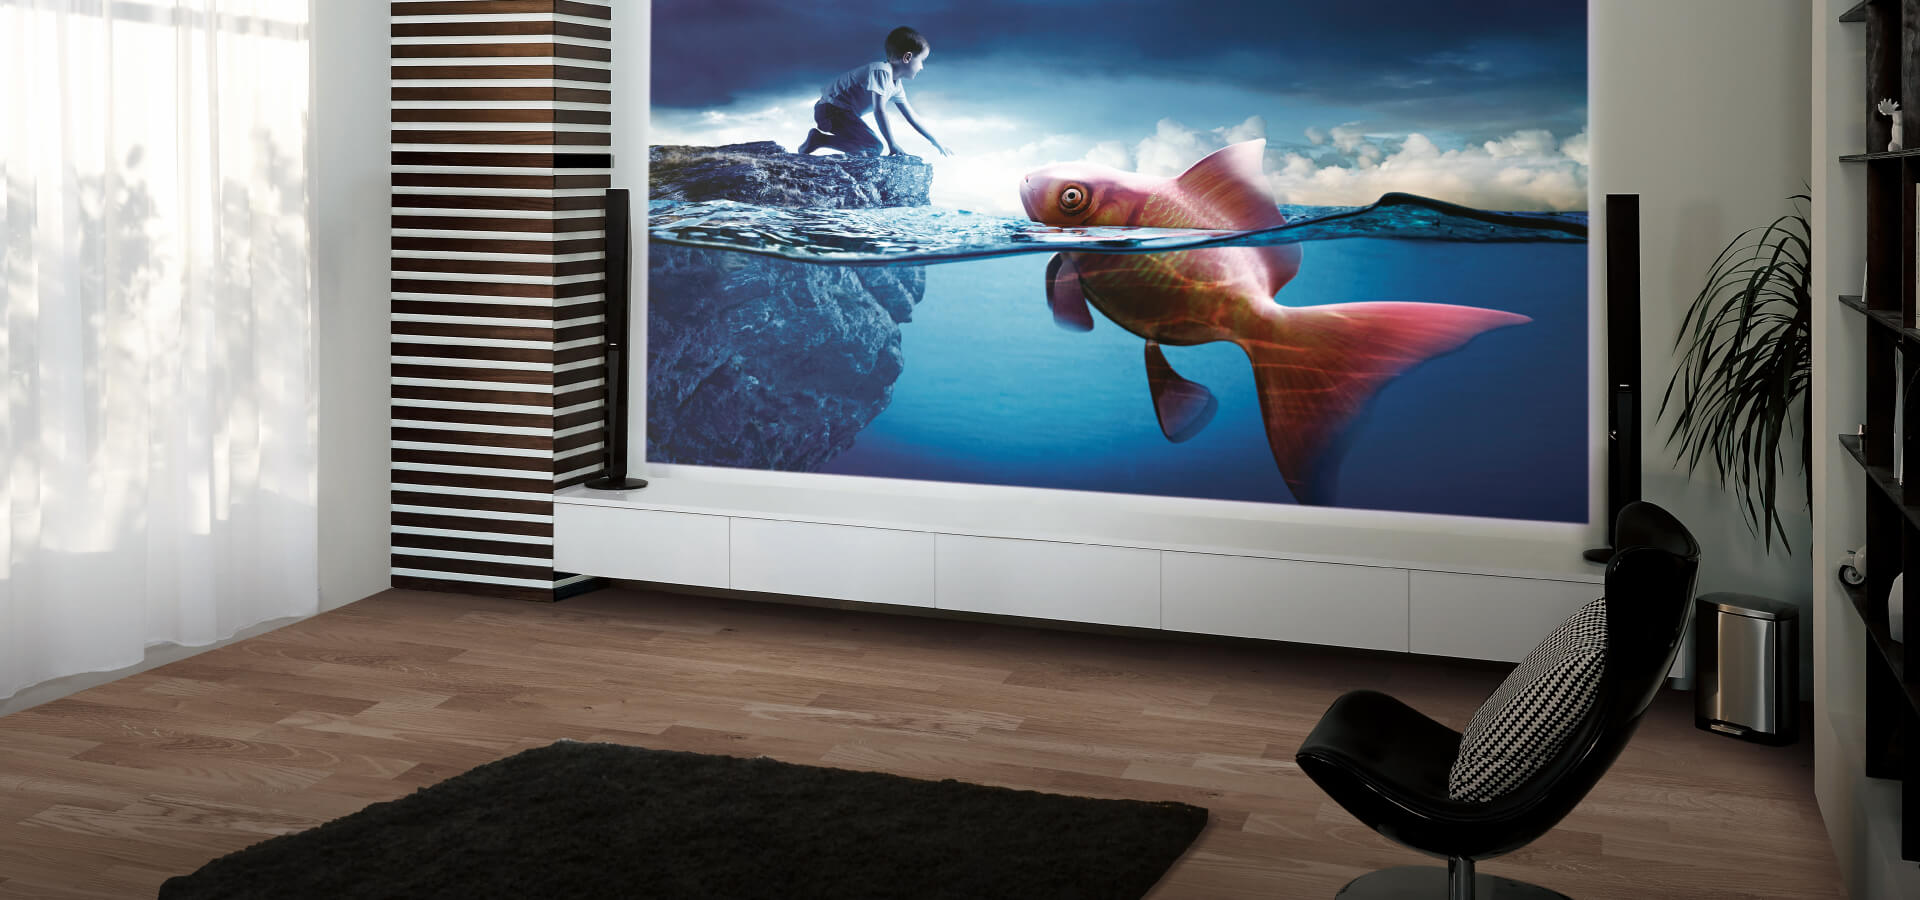 BenQ CineHome Series projector delivering large screen with vivid colour